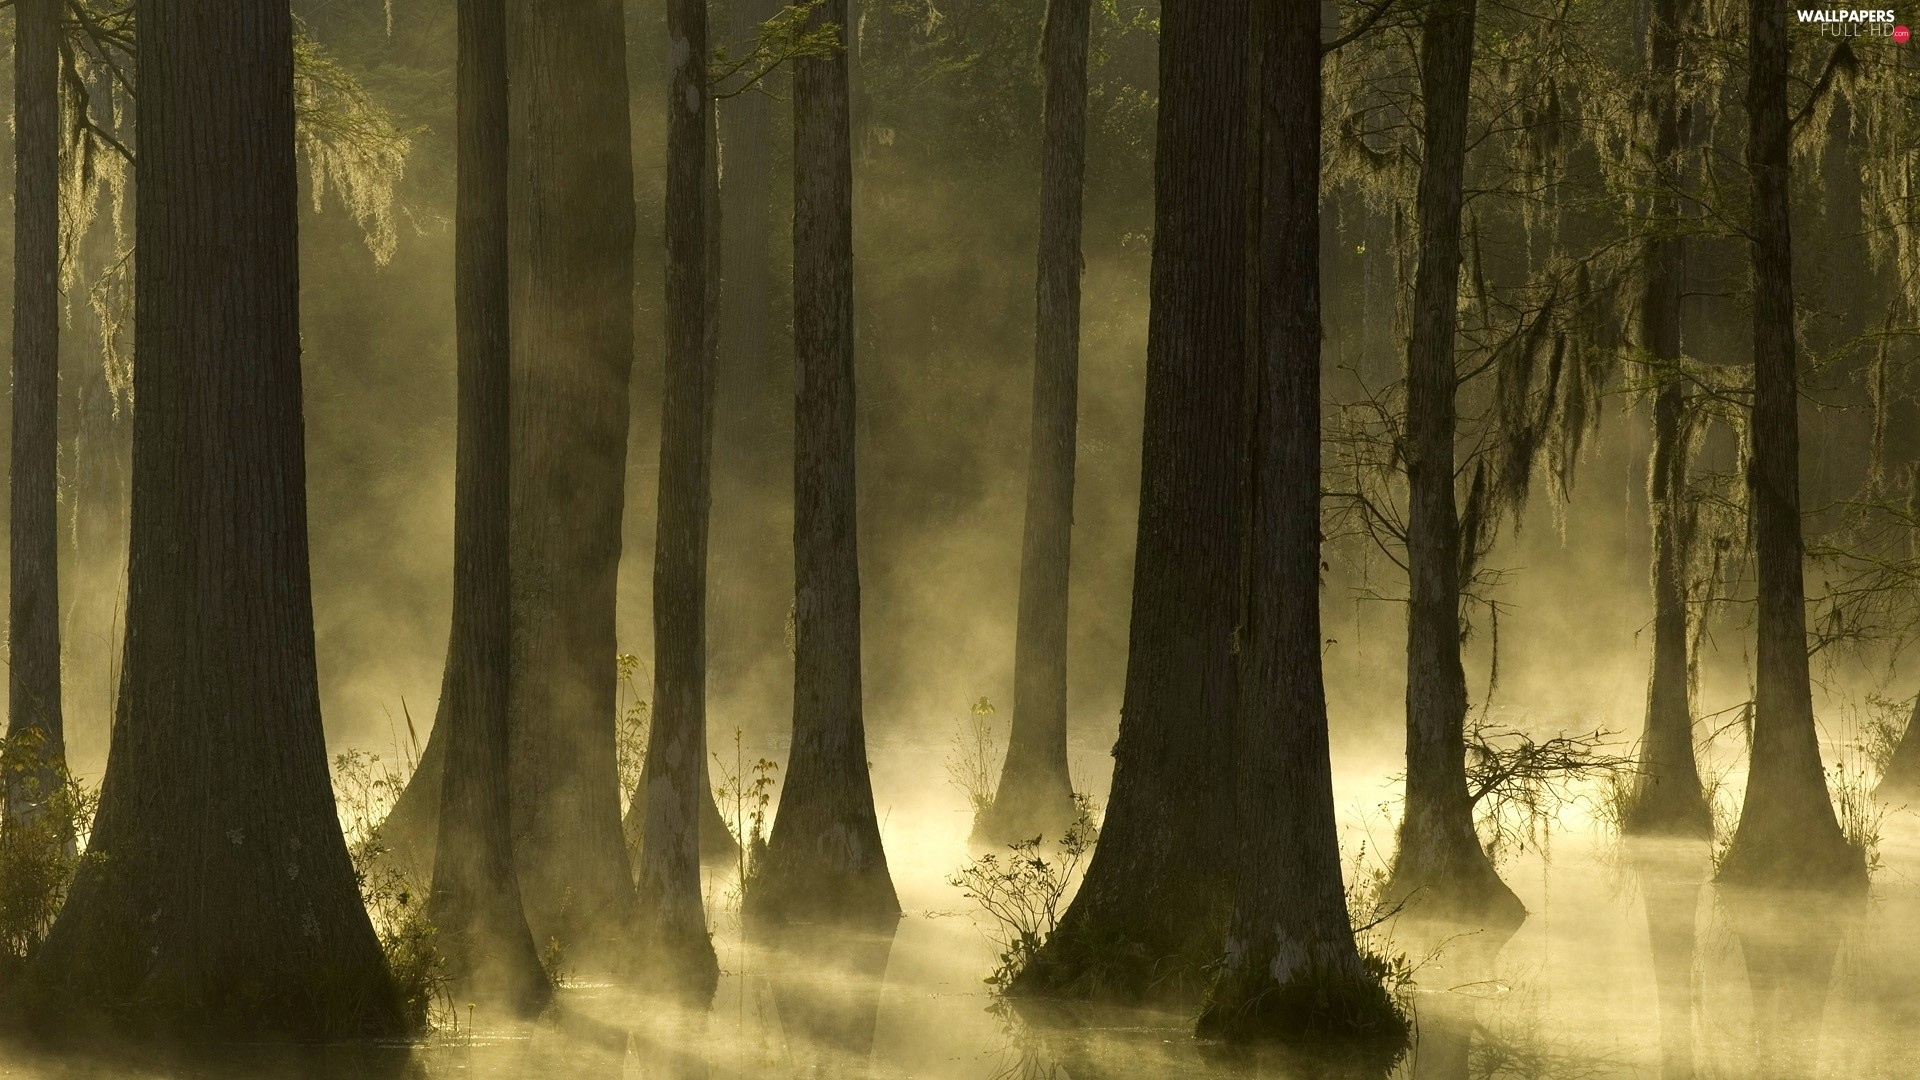 Fog, viewes, forest, trees